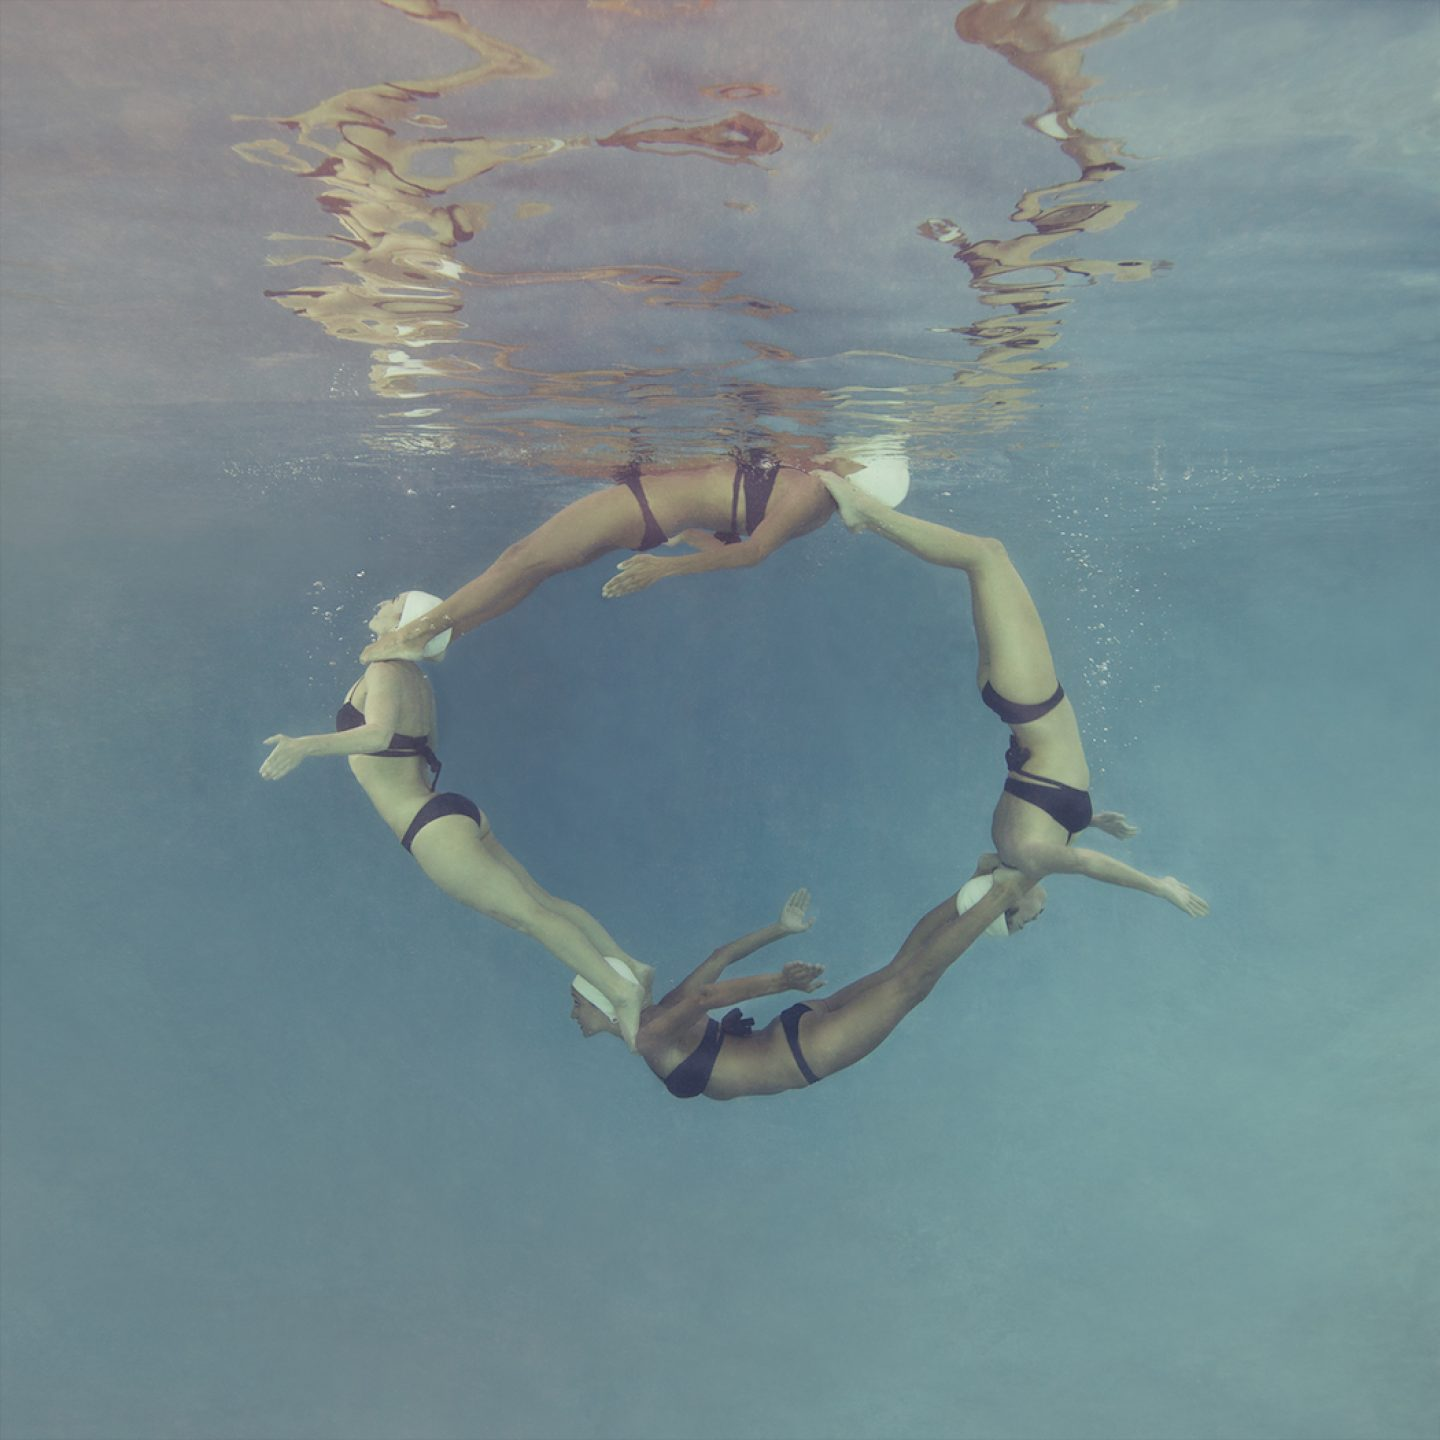 MalloryMorrison_photography-Dolphin-Circle